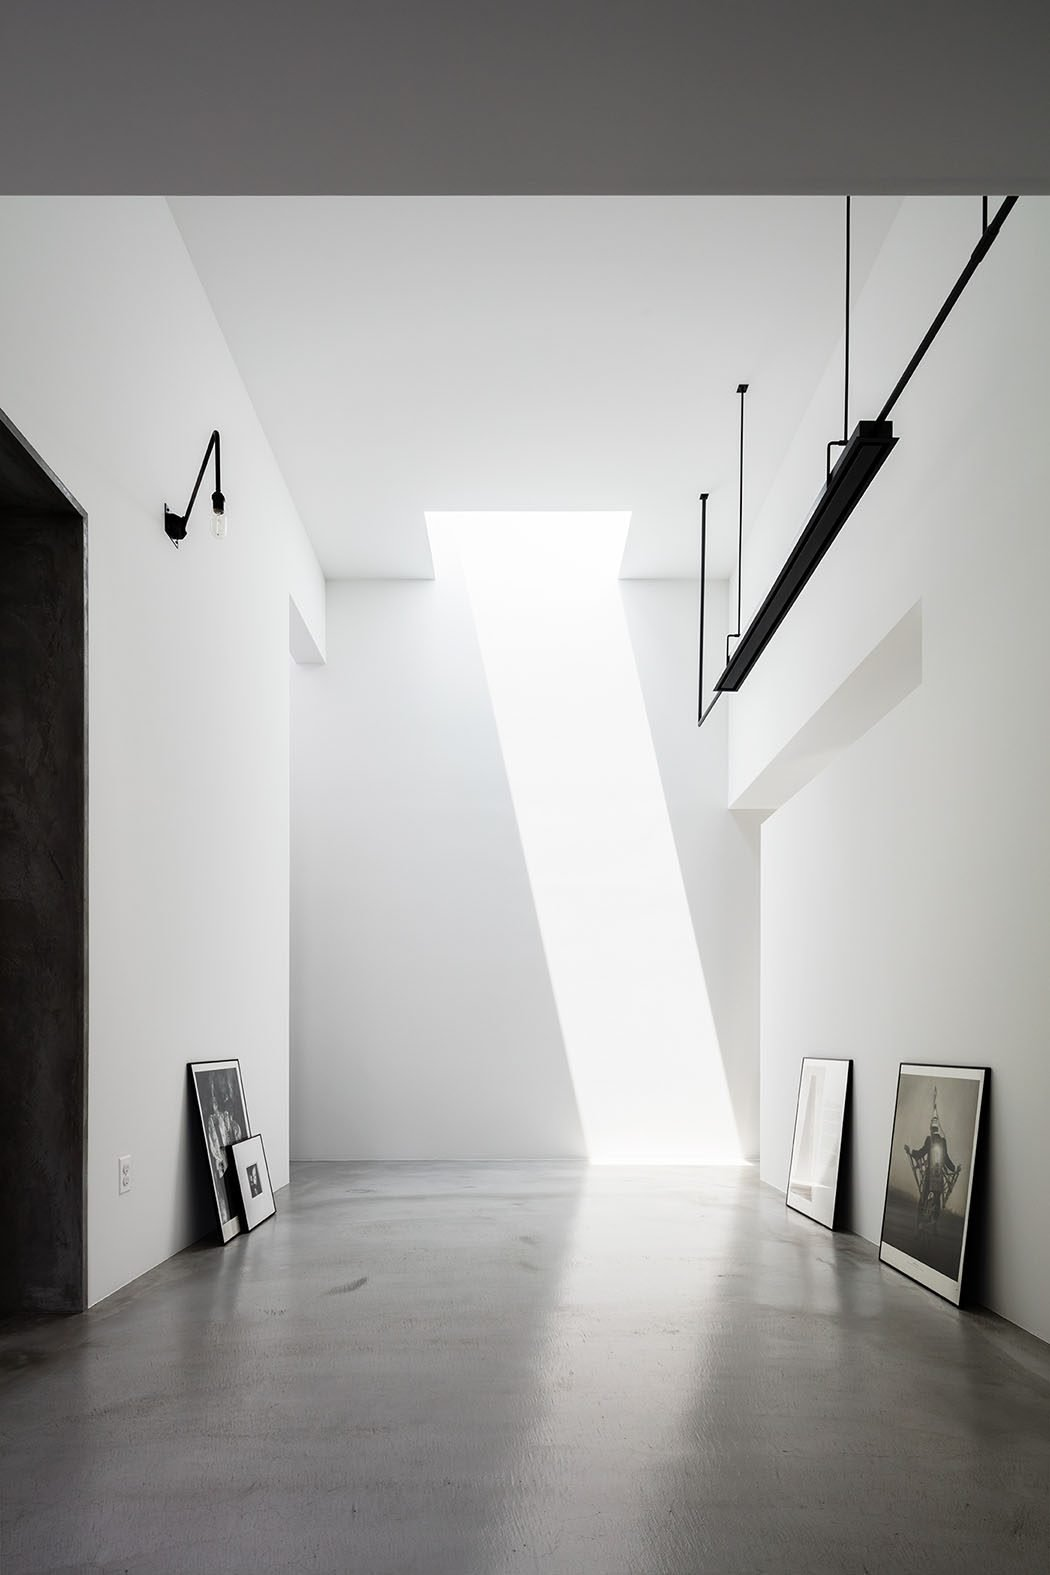 Ignant architecture house for a photographer form kouichi kimura architects 9 1050x1575